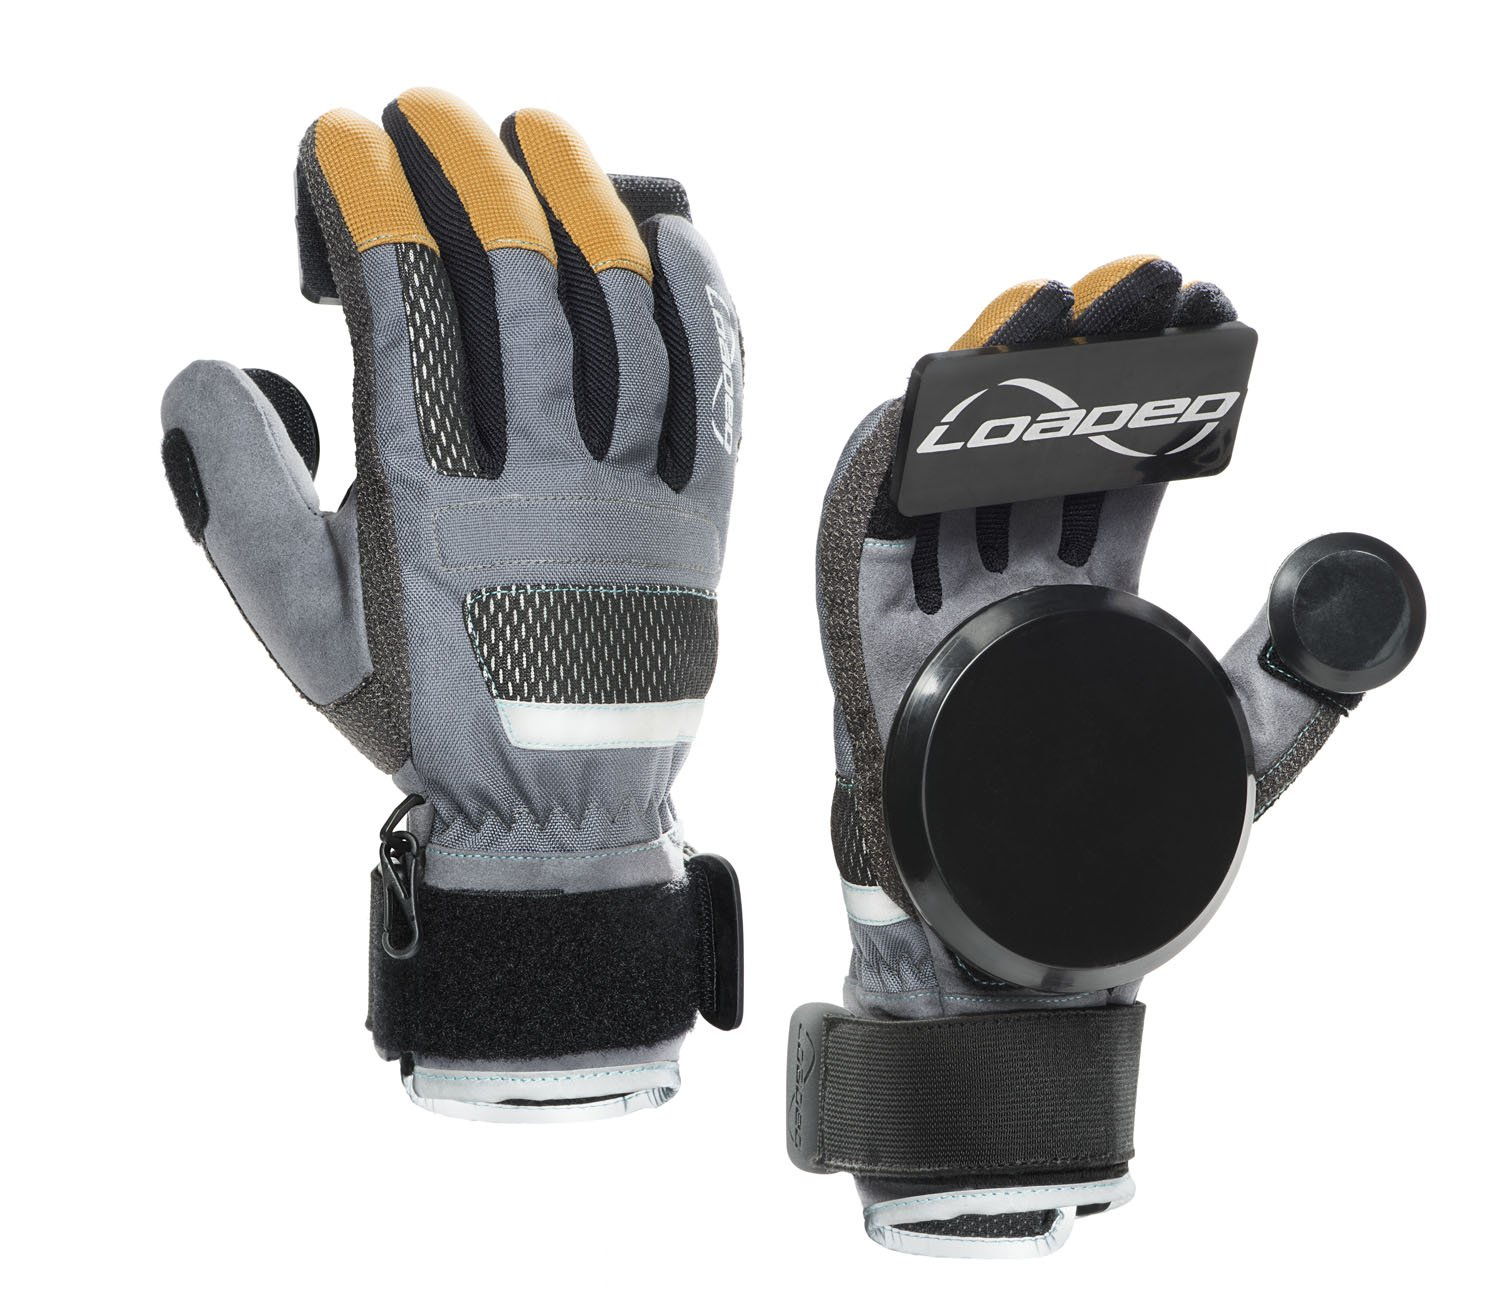 Loaded Freeride Glove Version 7.0